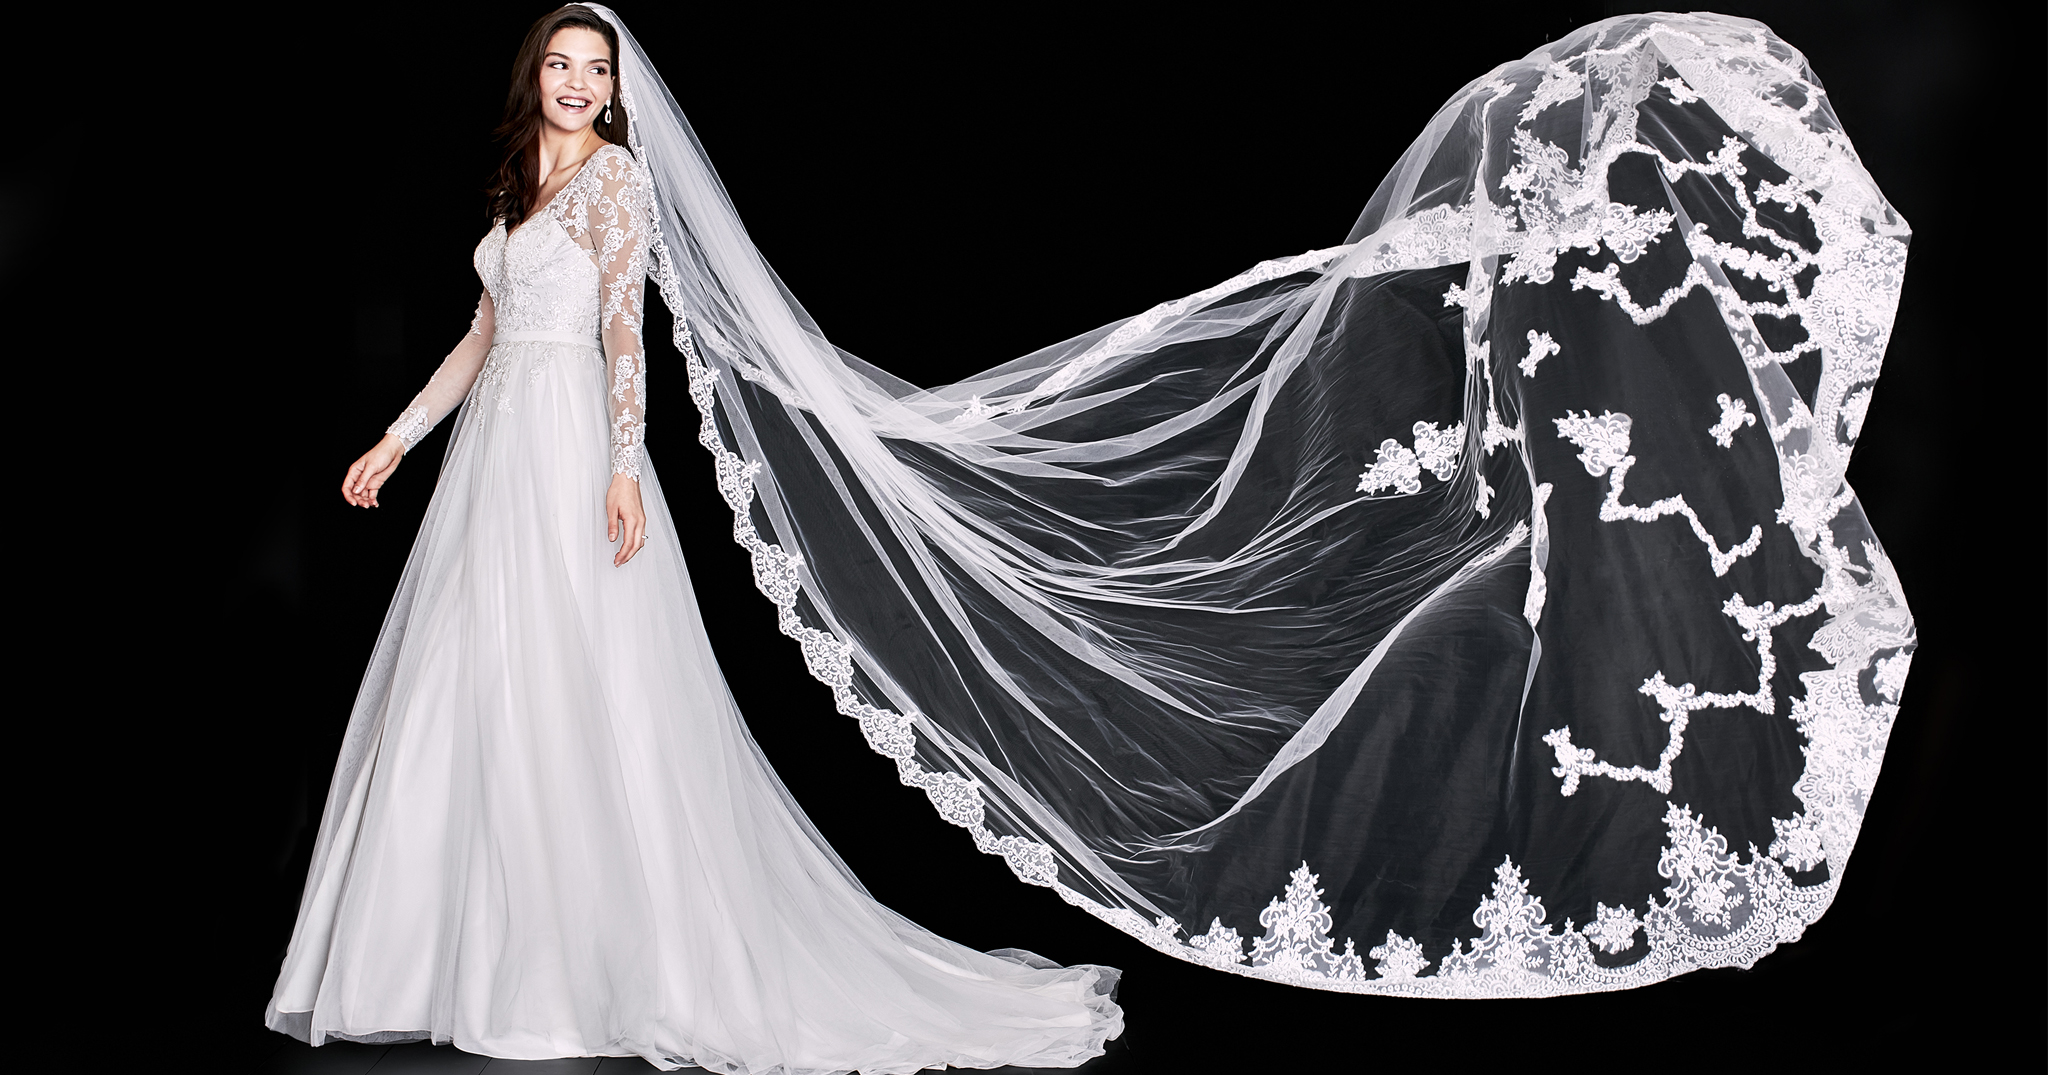 The Best Black Friday And Cyber Monday Deals For Brides To